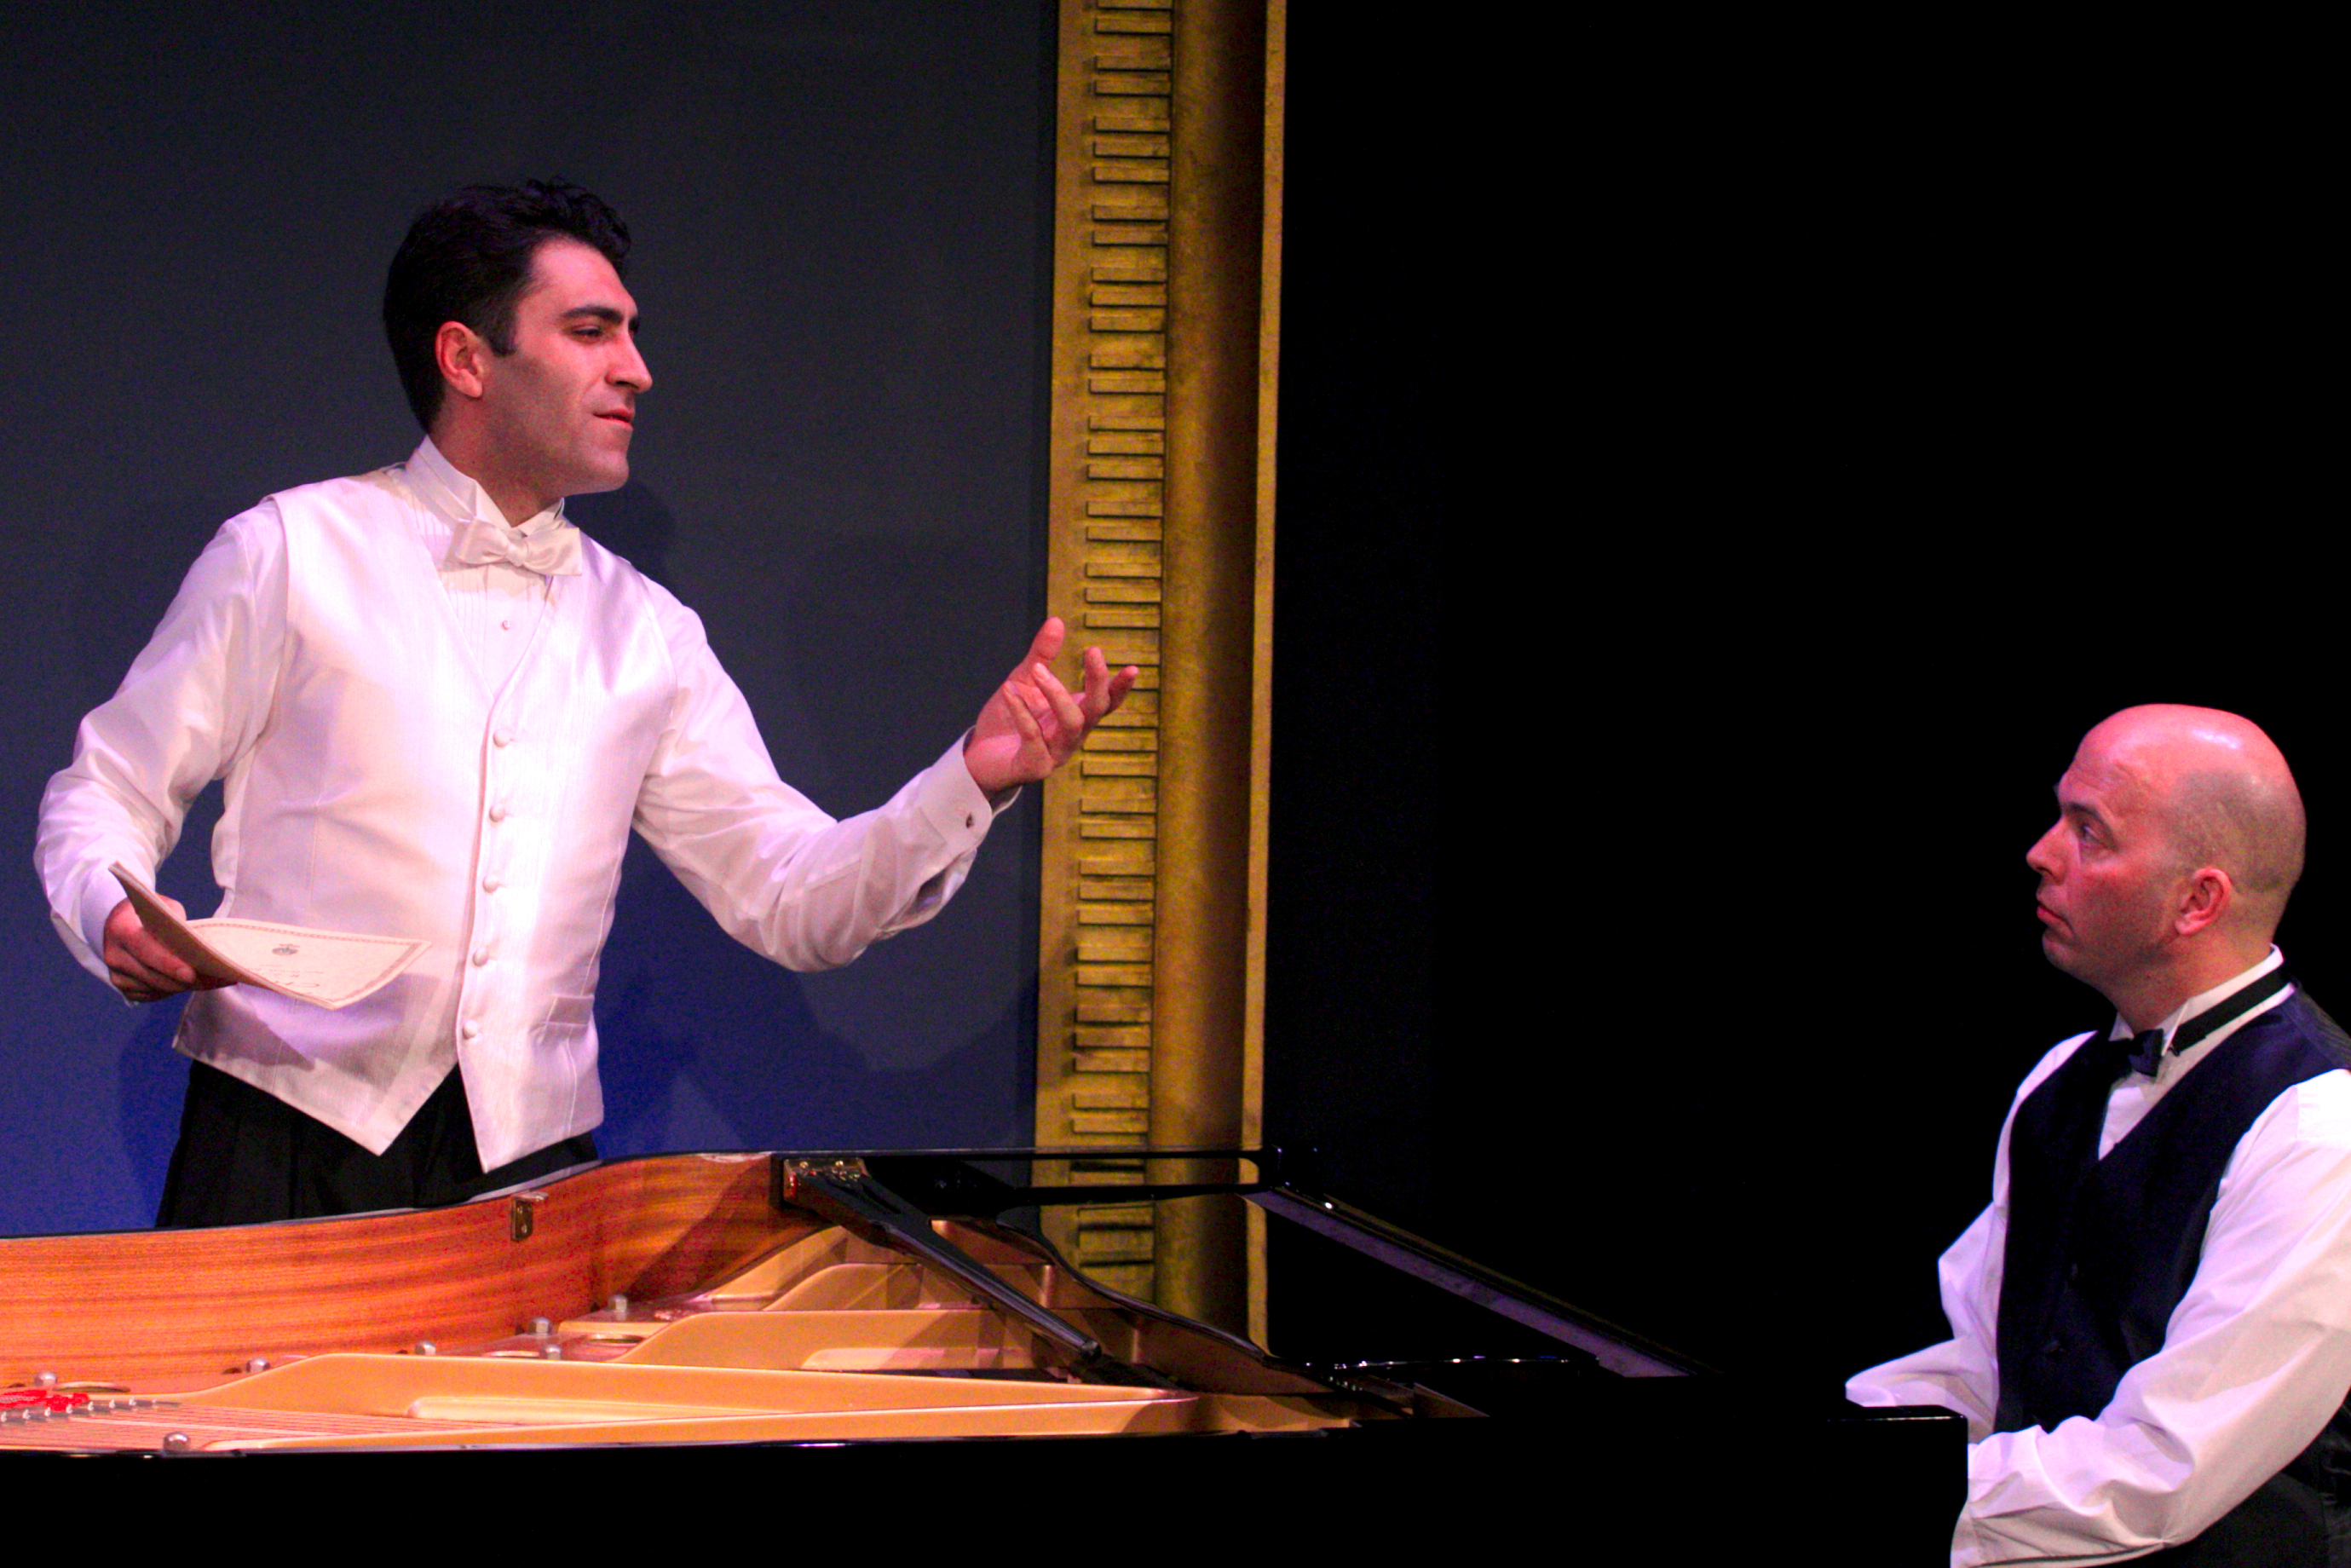 2 Pianos, 4 Hands Summons Up Universal Memories of Piano Lessons